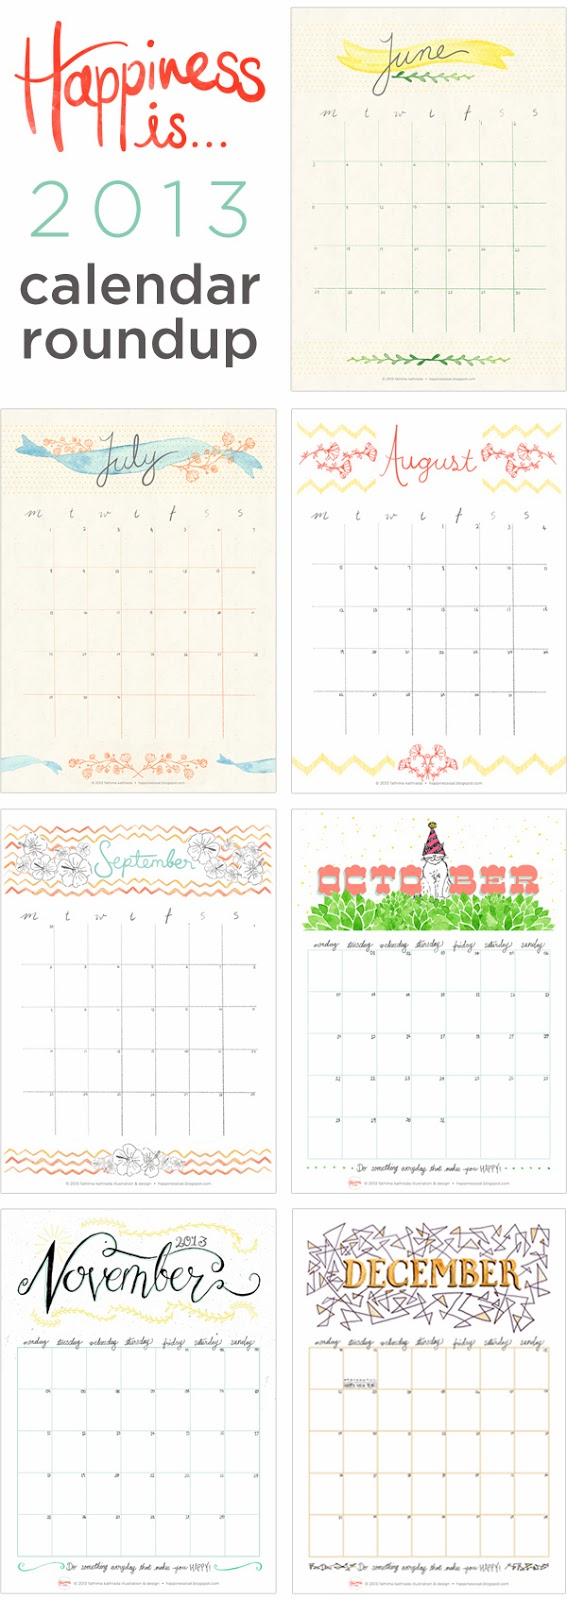 Free printable calendars from 2013 + free printable January 2014 calendar! Free printable January 2014 calendar! Designed & illustrated by fathima at Happiness is...